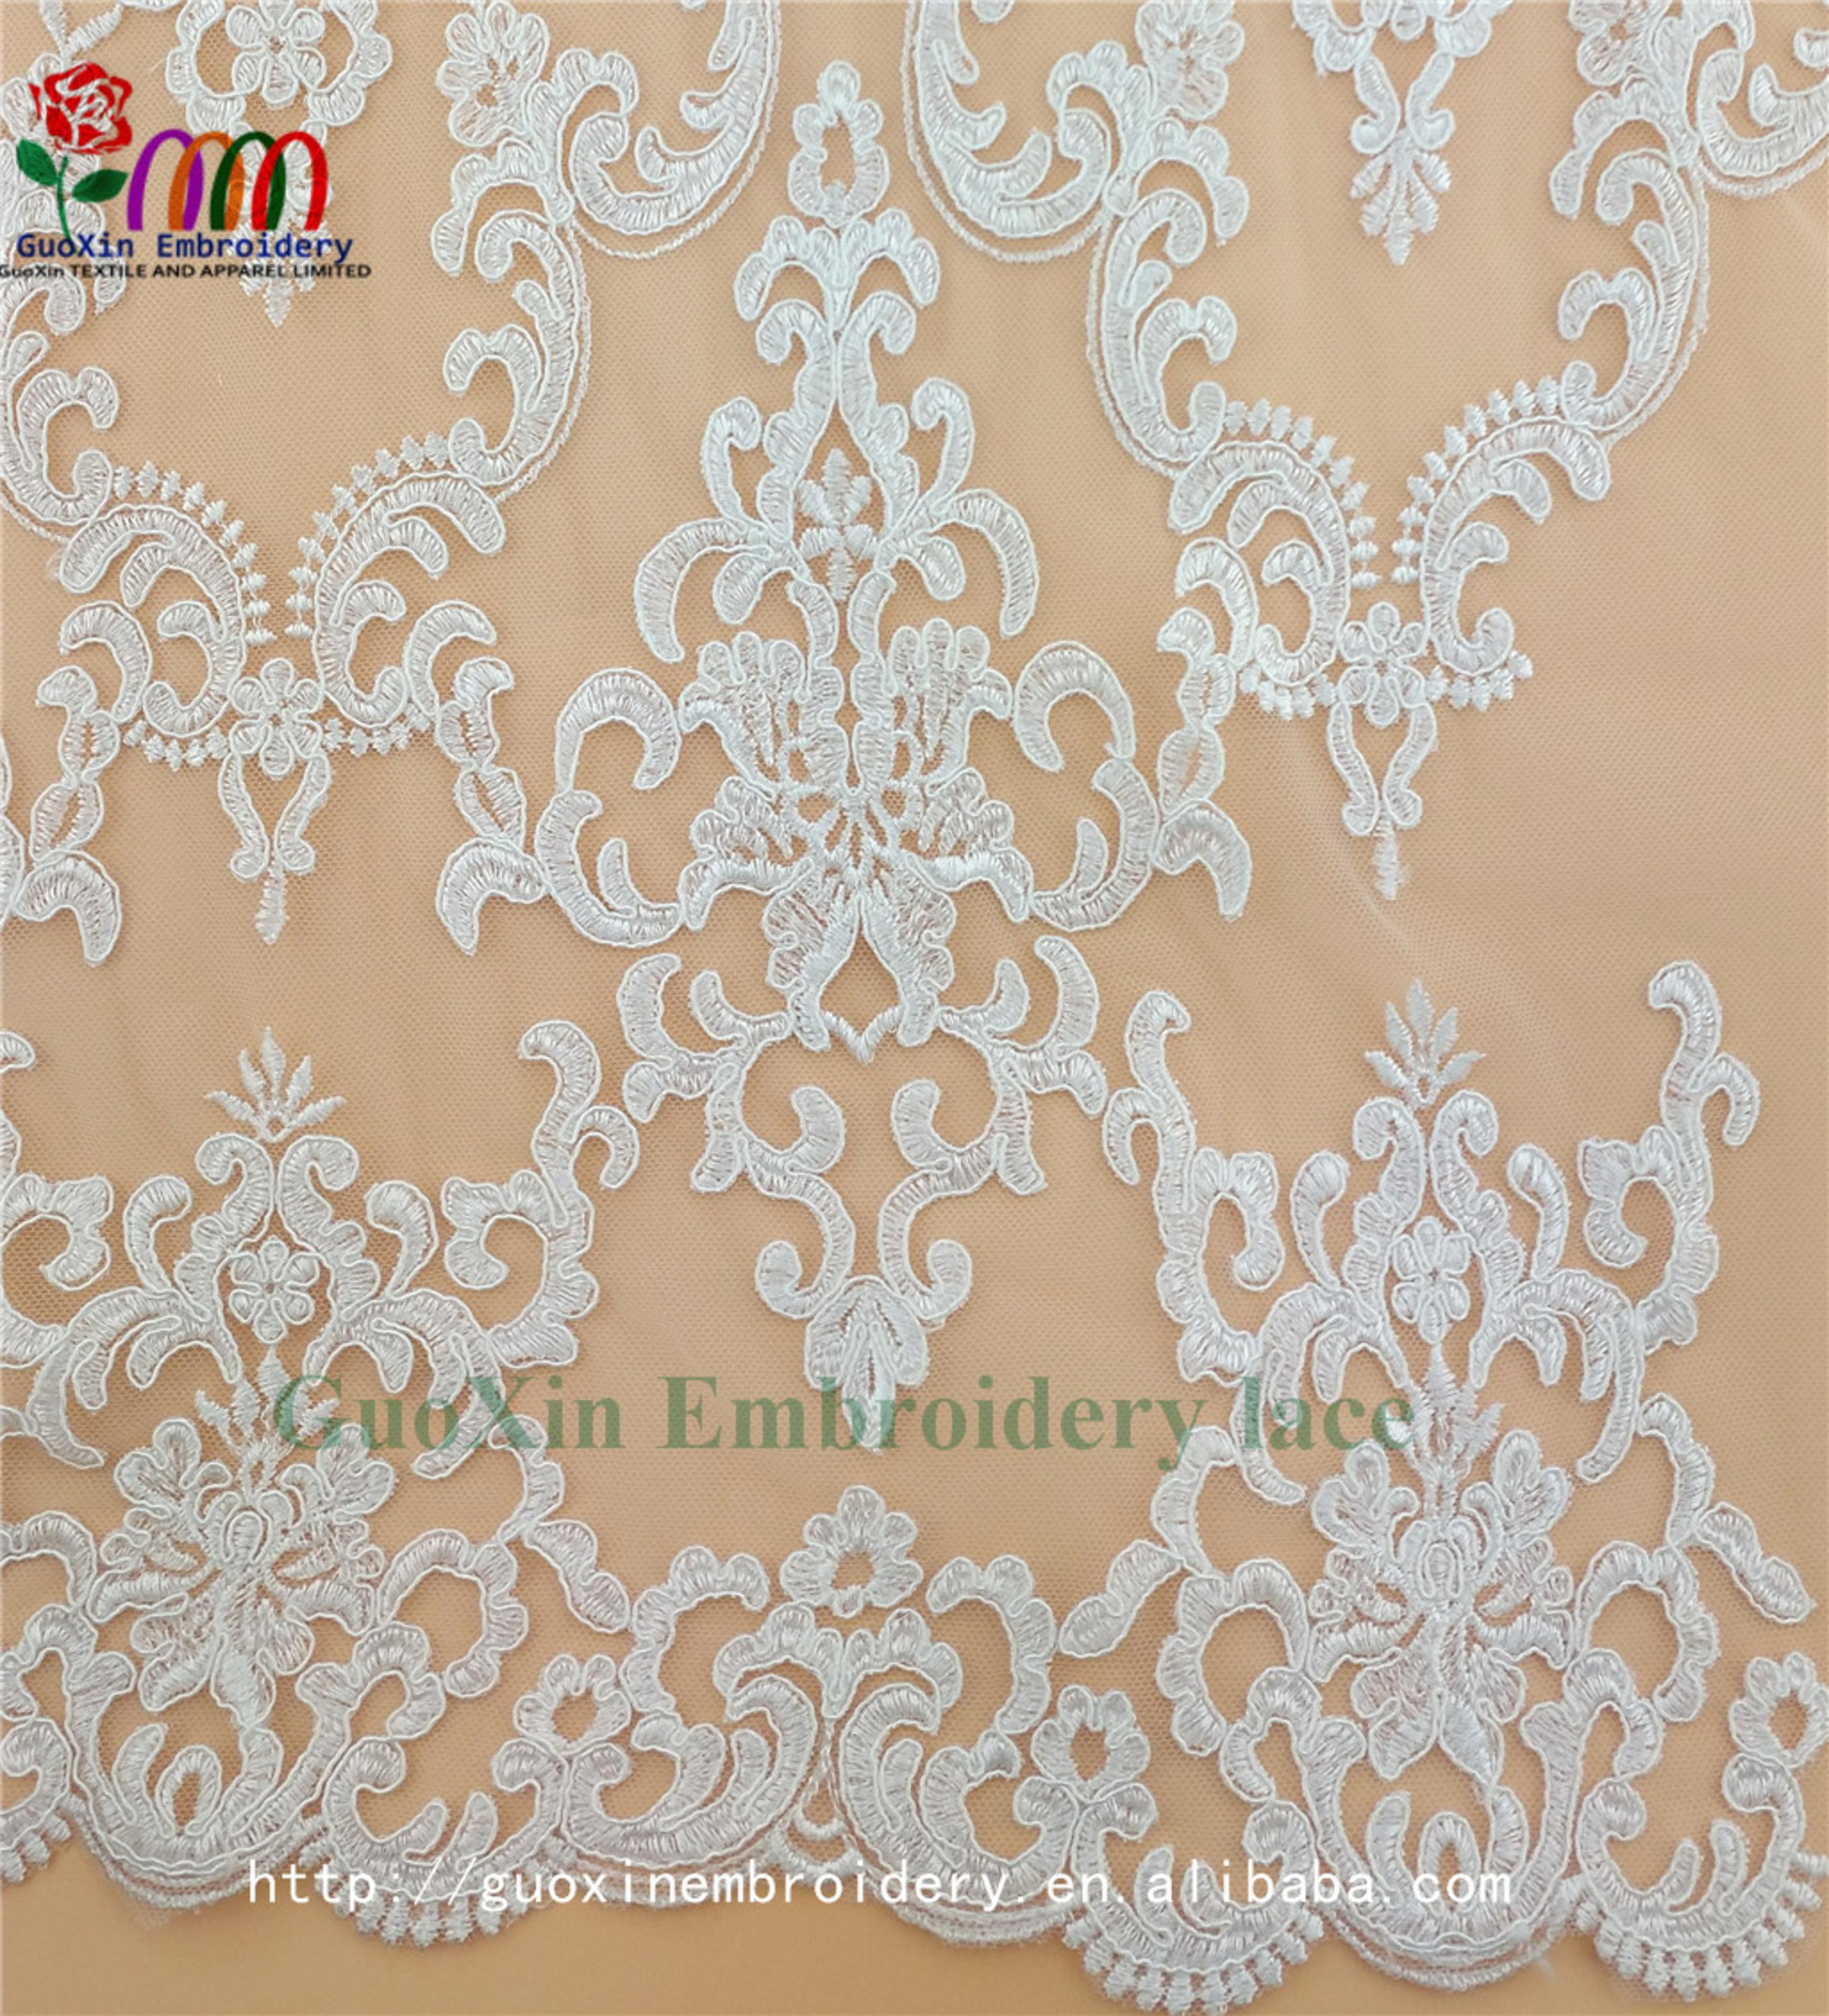 embroidery tulle manufacture wholesale wedding veil ivory lace fabric with cording (3).jpg